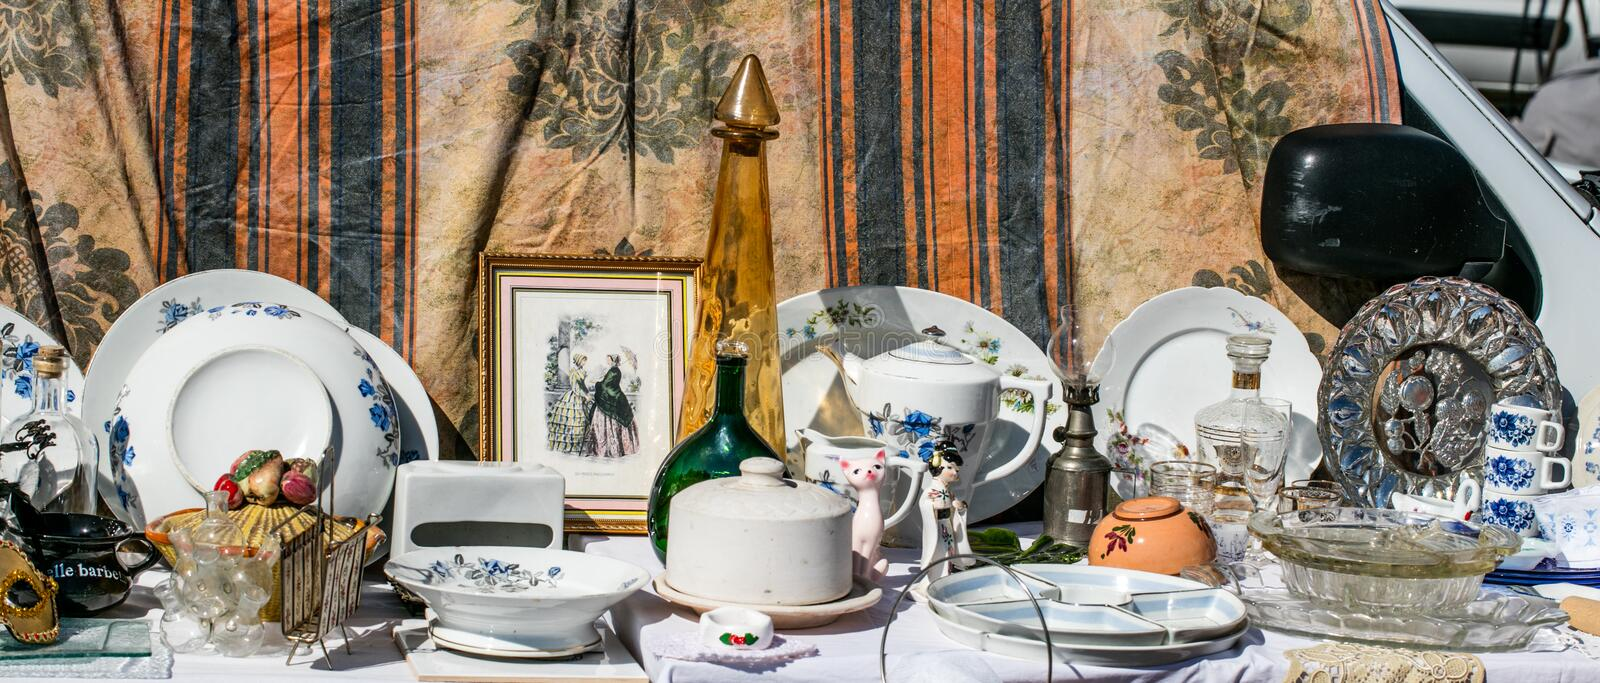 Retro display of household things and dishes at garage sale. Retro display of household things, various decoration objects and dishes at garage sale for second royalty free stock images